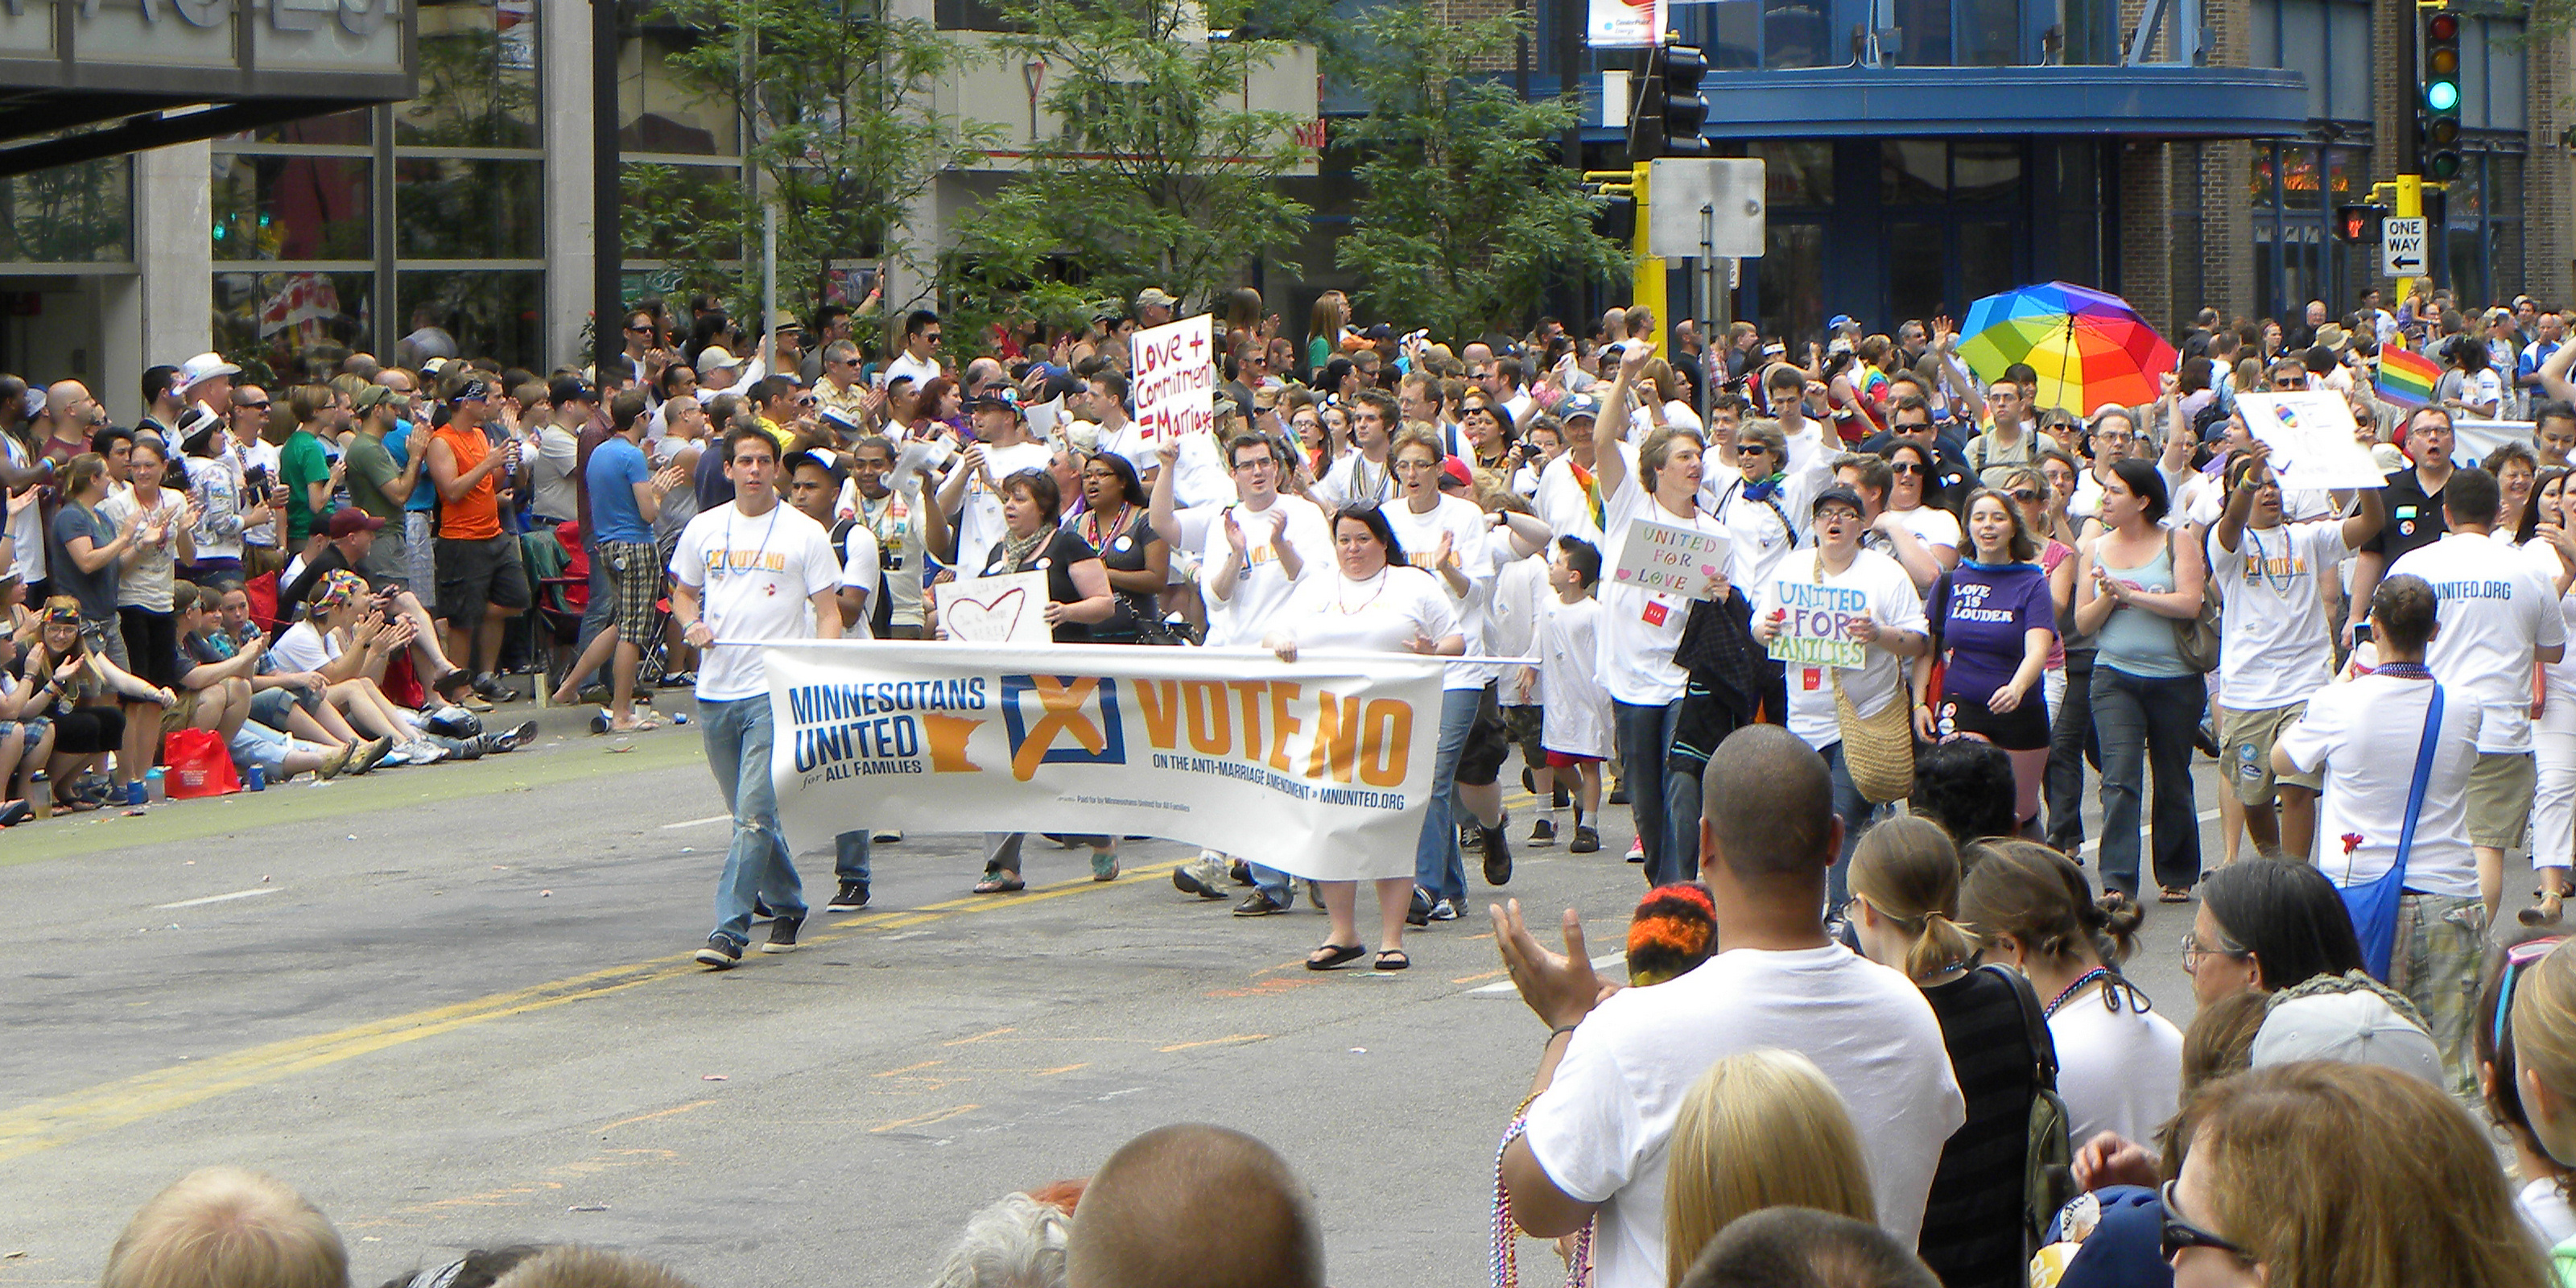 Minnesotans_United_at_the_Twin_Cities_Pride_Parade_2011_(5873844895).jpg